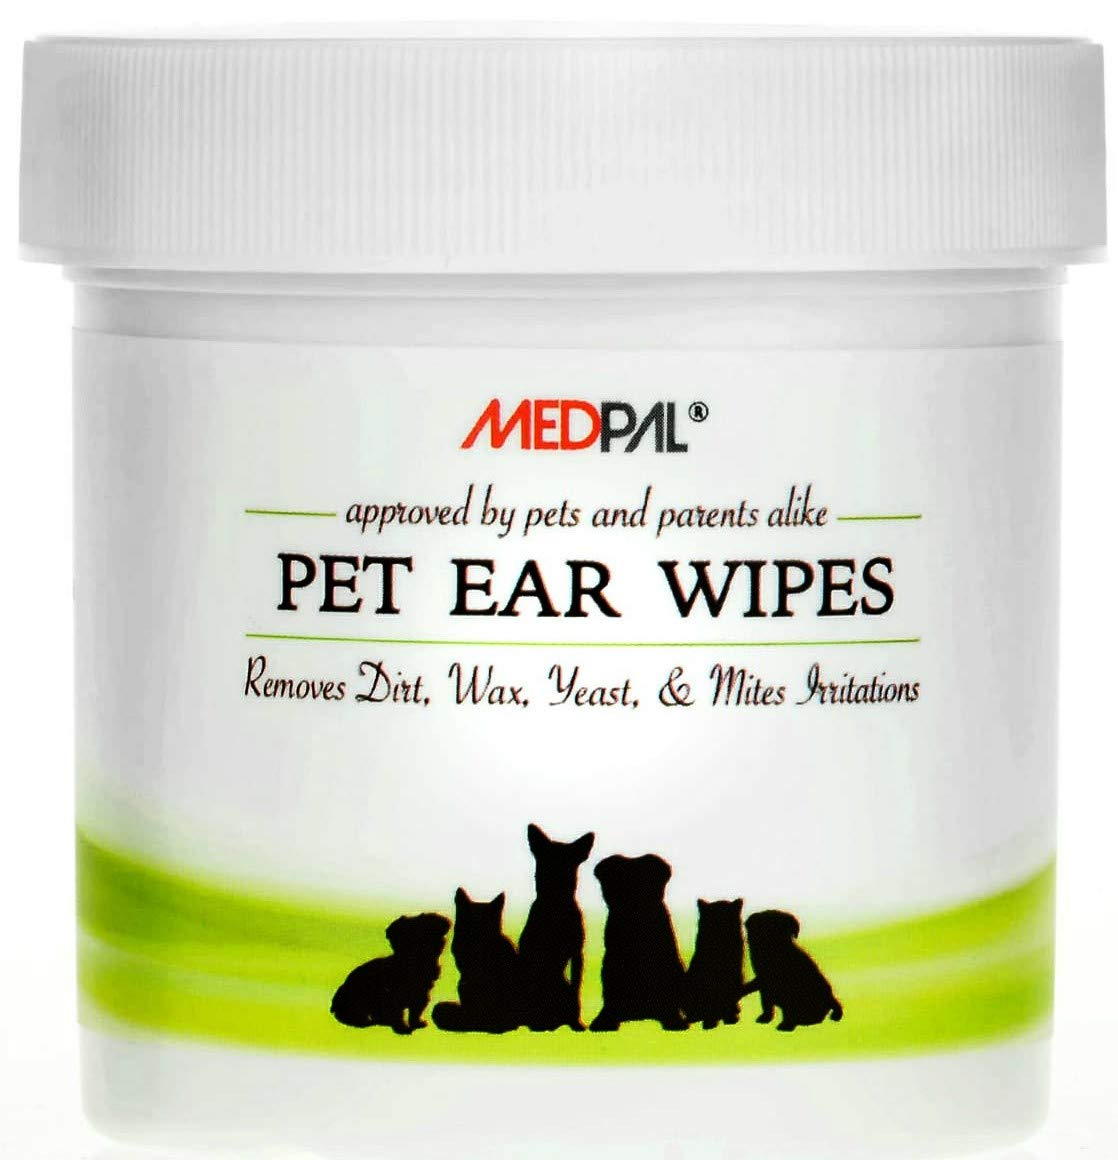 MedPal Professional Pet Ear Cleansing Wipes for Dogs and Cats - Dog Ear Wipes Used to Stop Itching, Prevent Mites, Yeast & Ear Infections. - Advanced Formula! (100 Count)